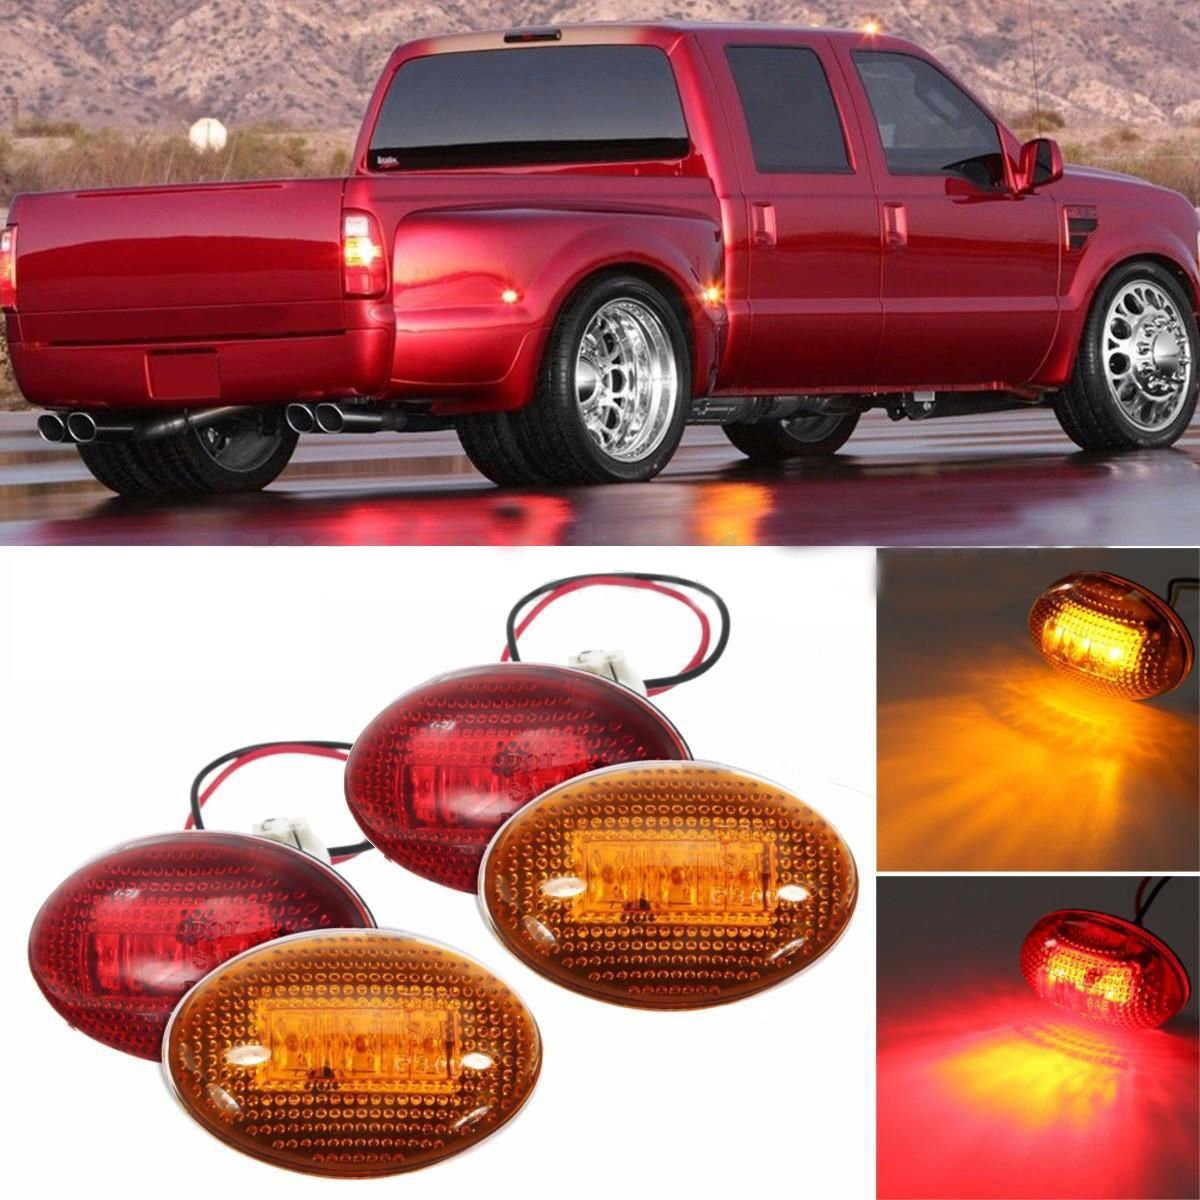 Simply Silver - LED Light Fender - for 1999-2010 Ford F350 Amber/Red Side Fender Marker Dually Bed LED Light Kit FL